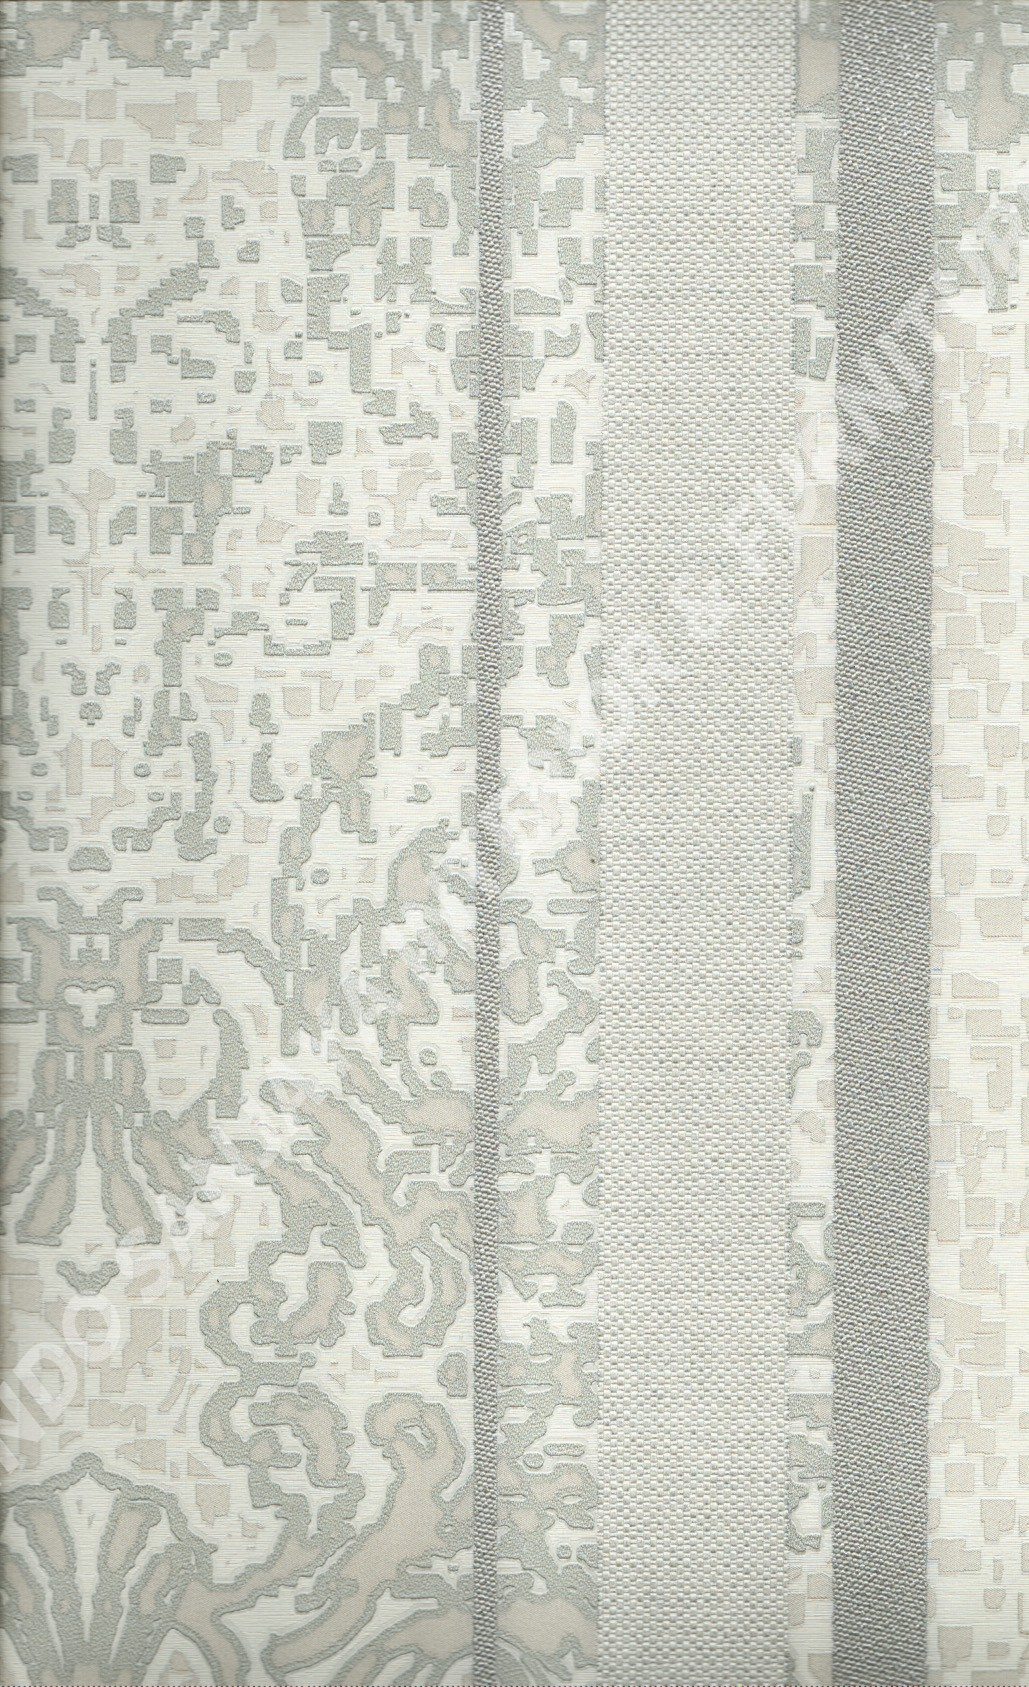 wallpaper   Wallpaper Bunga 3076:3076 corak  warna